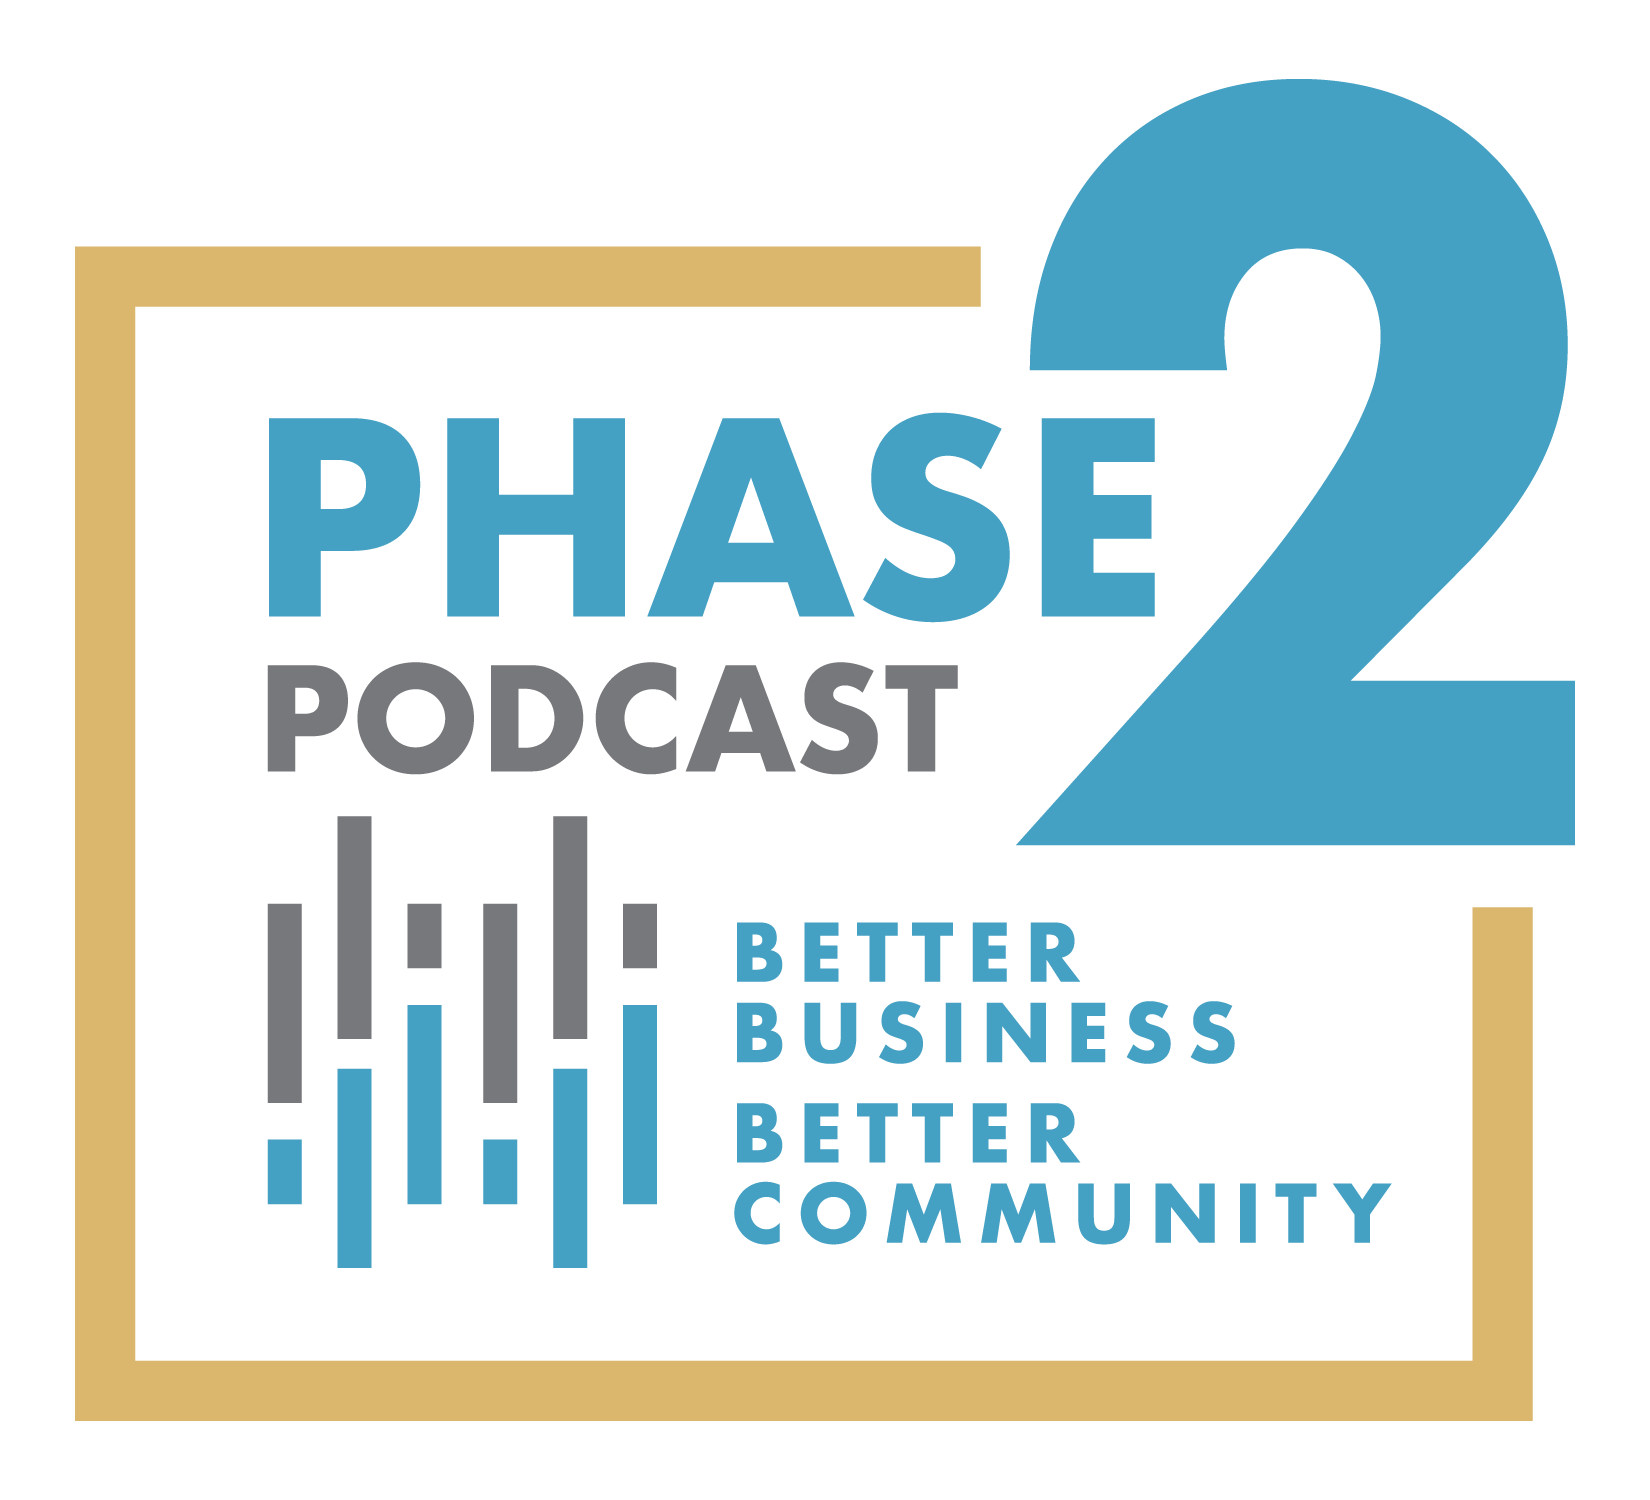 The Phase 2 Podcast show art